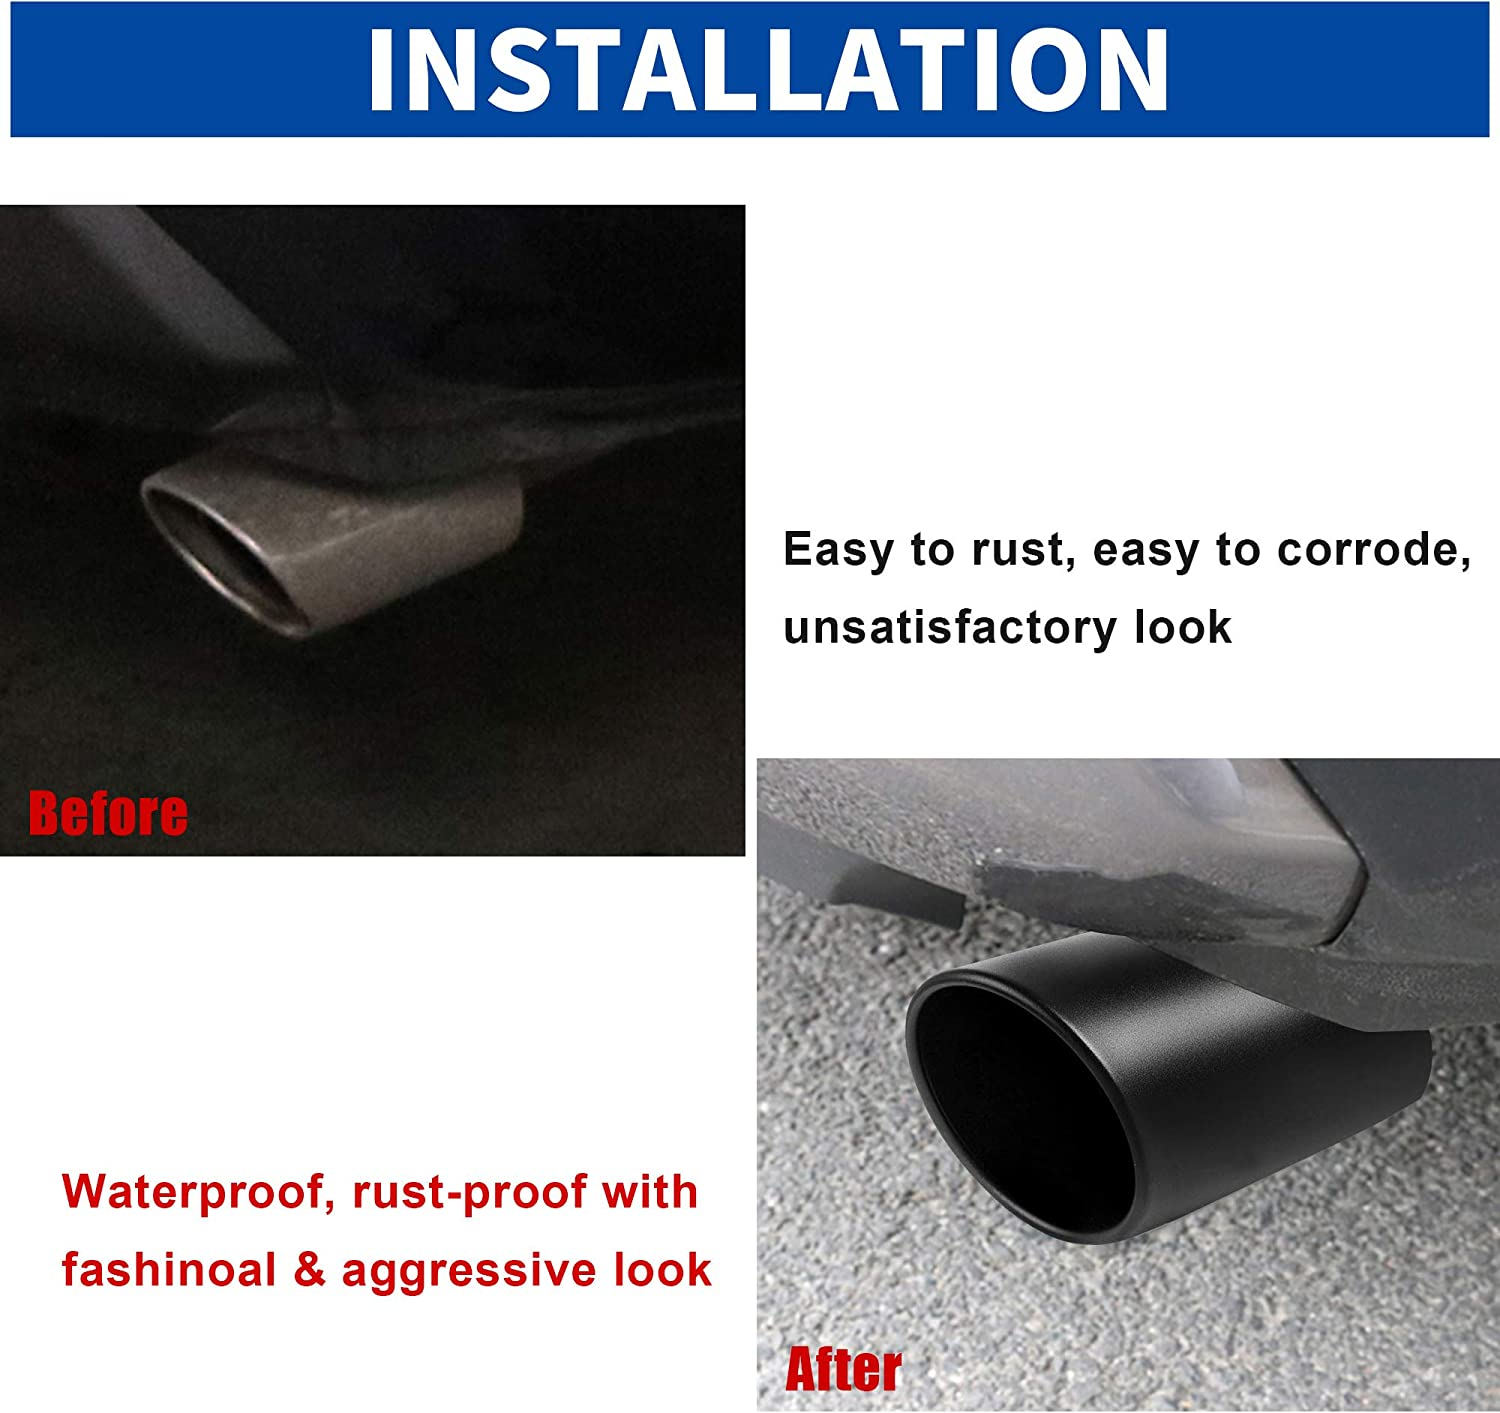 Bolt On Design 3 inlet to 5 outlet Exhaust TIP,3 x 5 x 12 in Black Stainless Steel Exhaust Tip